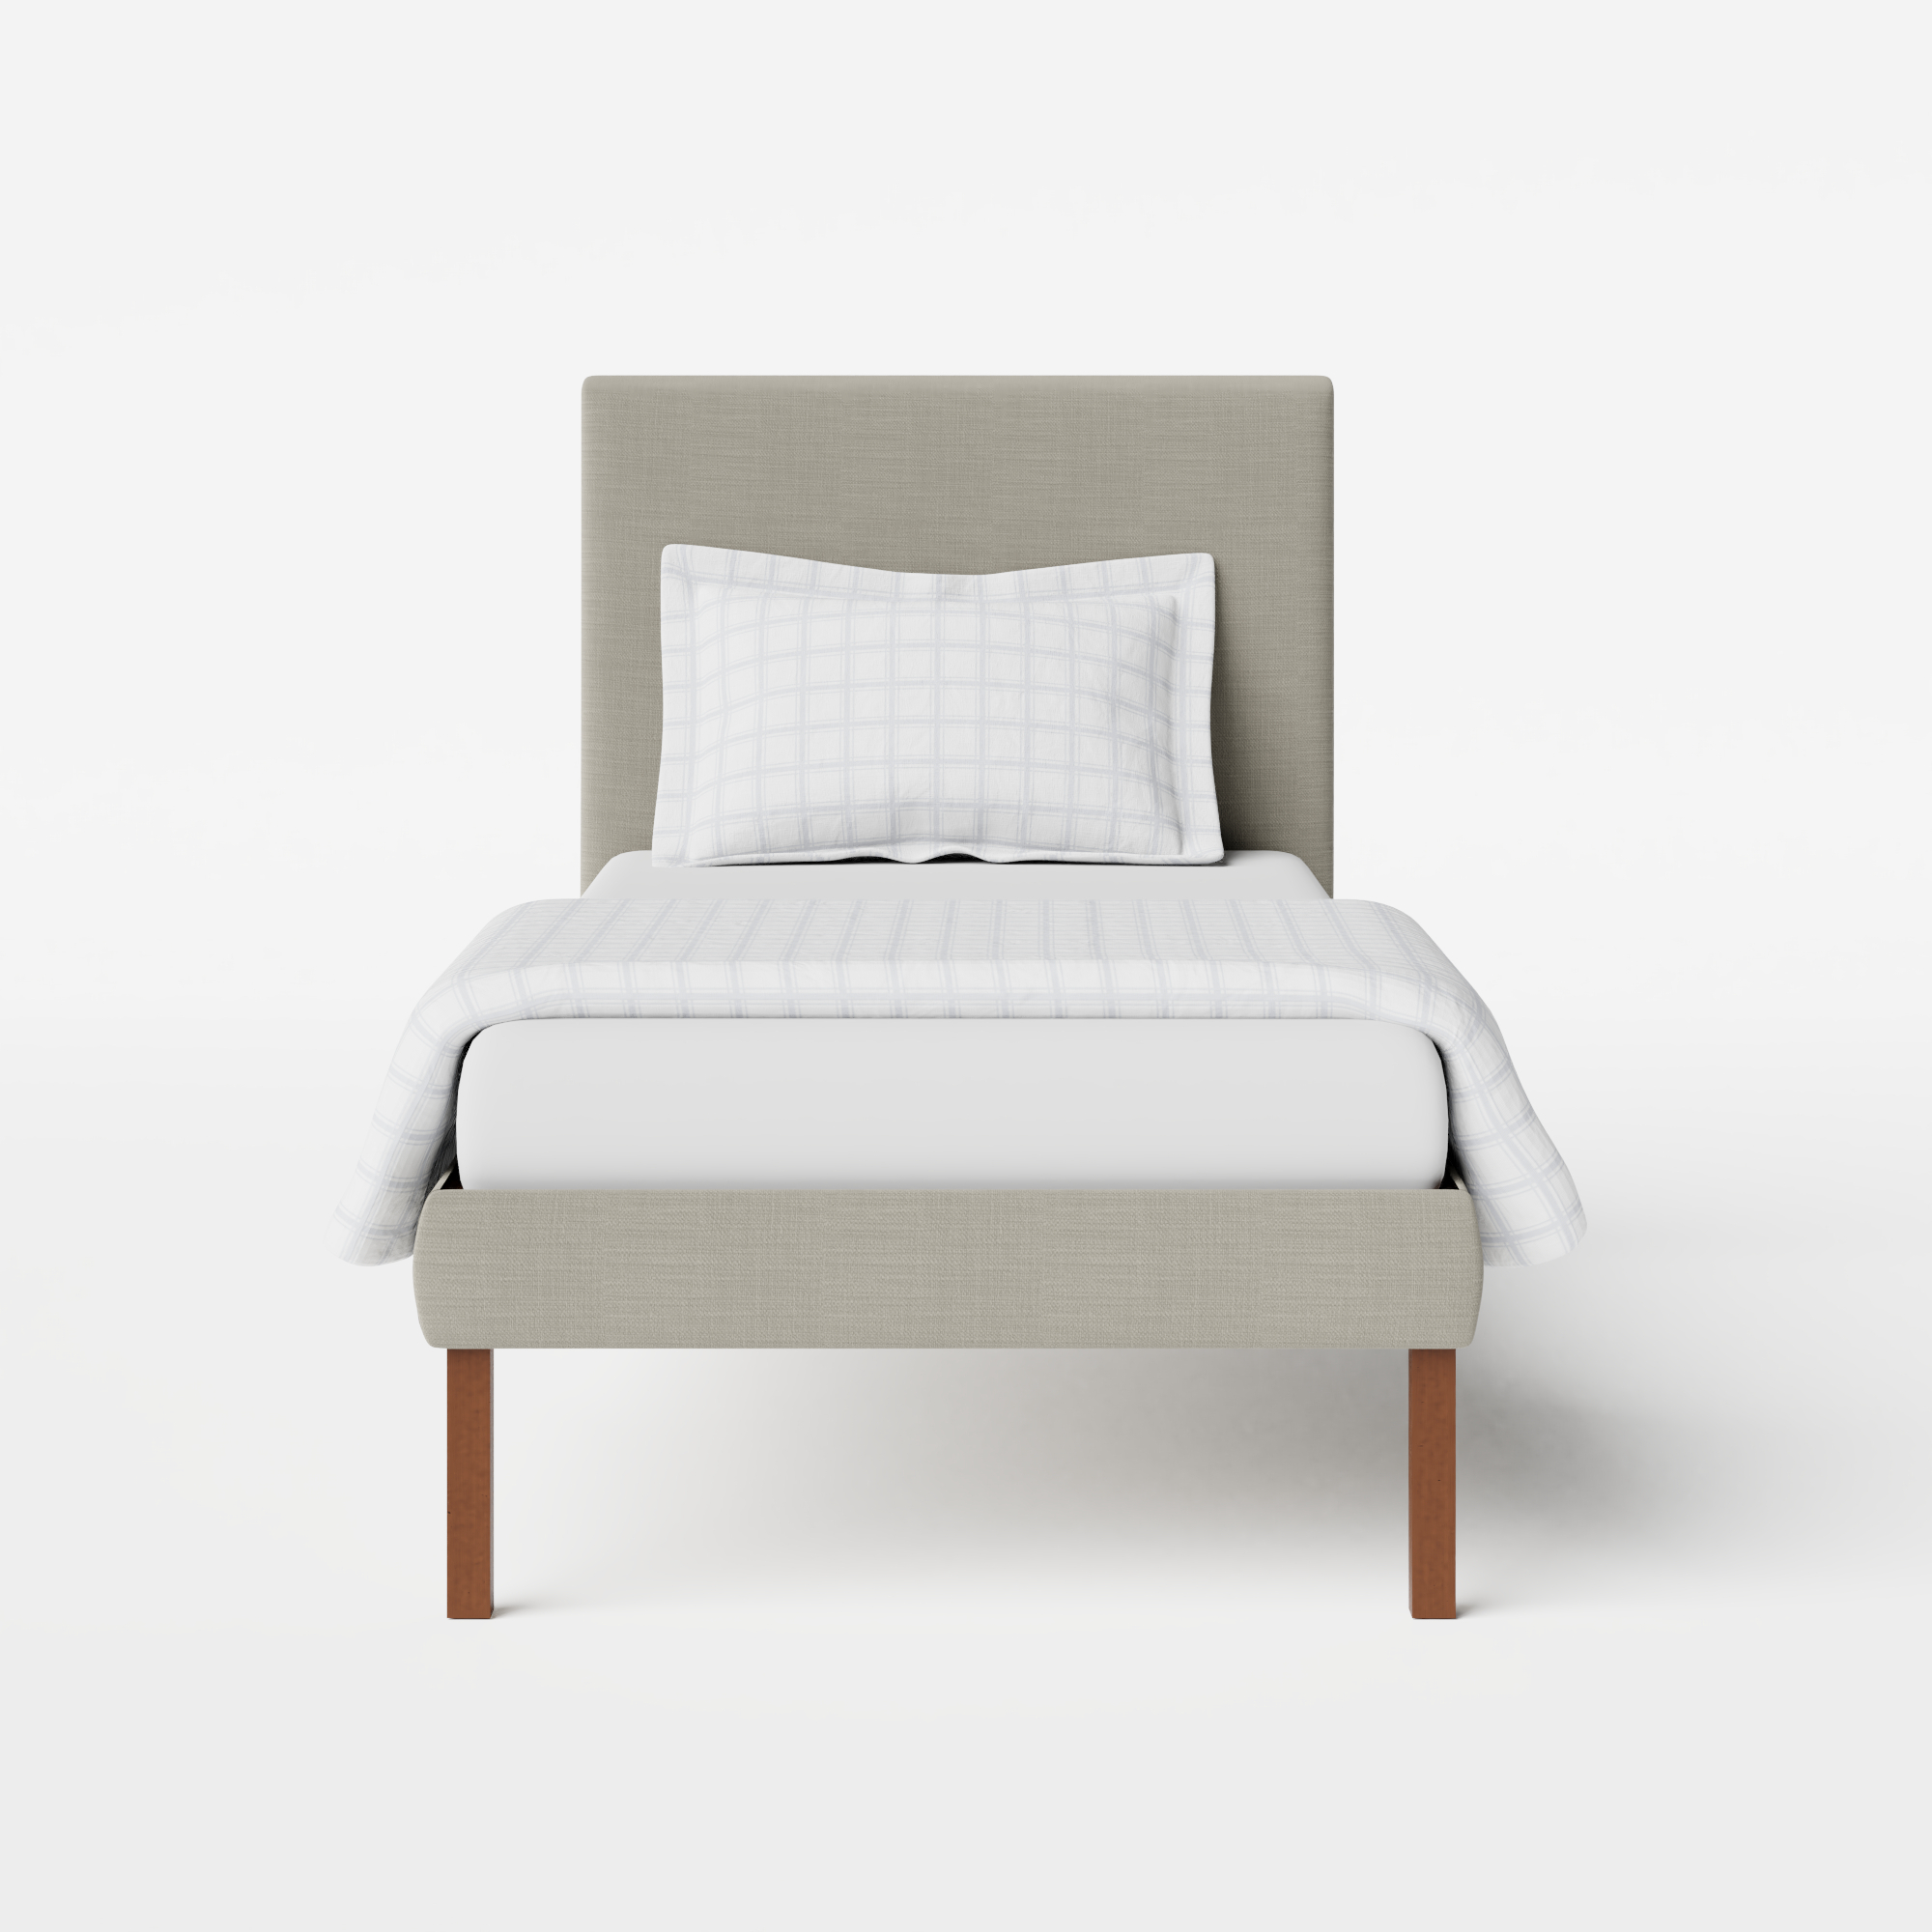 Misaki Upholstered upholstered single bed in grey fabric